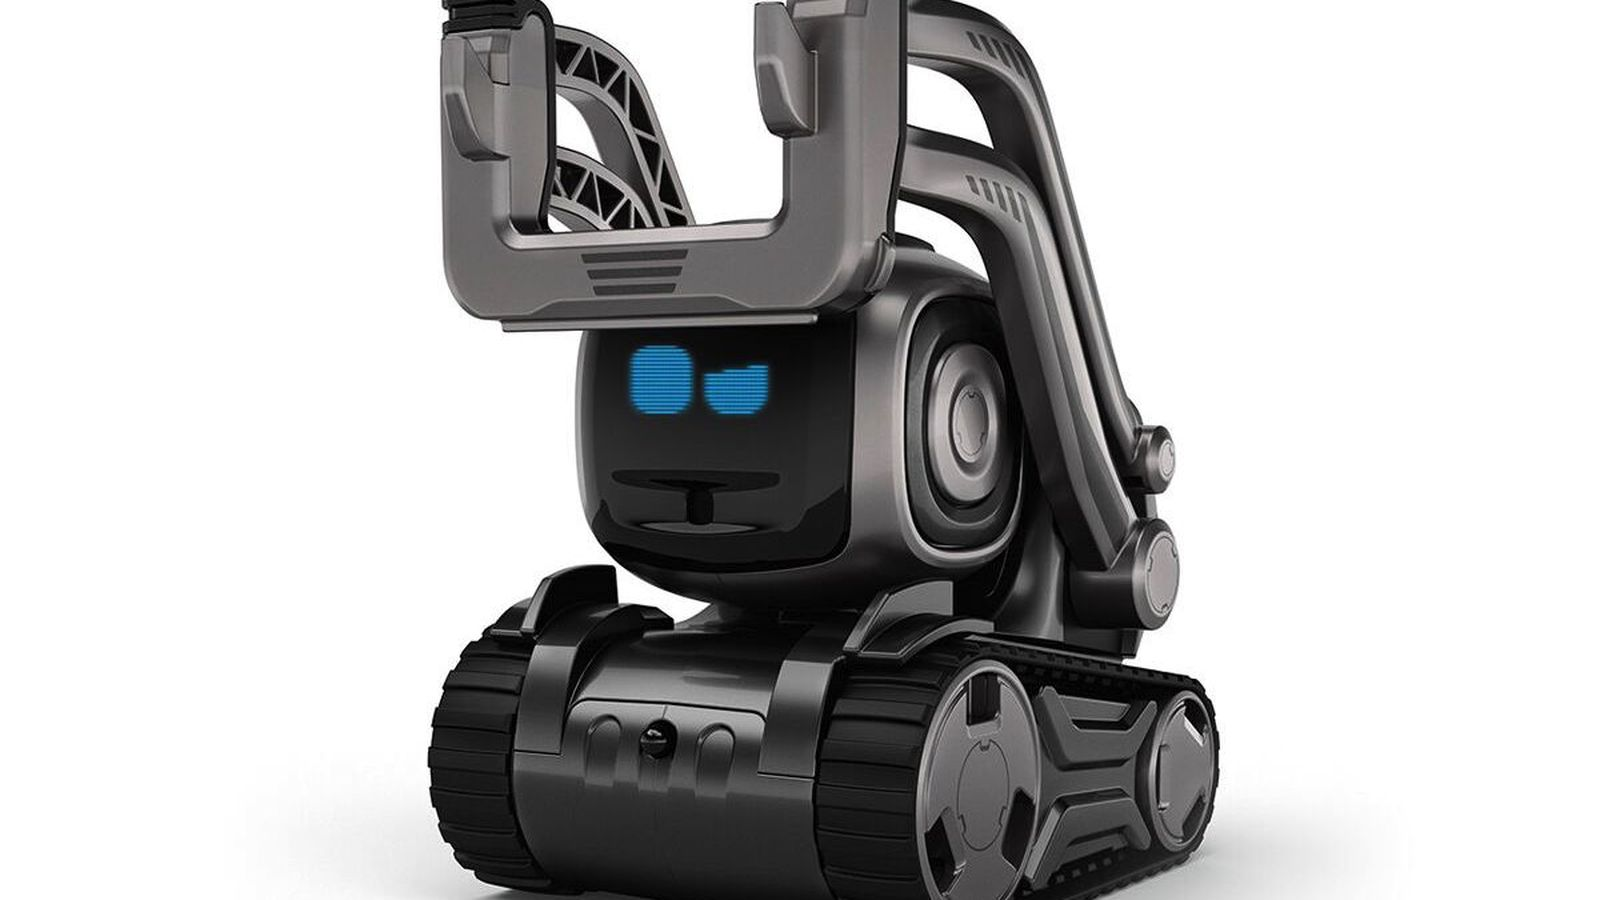 Anki U2019s Limited Edition Dark Cozmo Seems Like A Metaphor For Growing Up